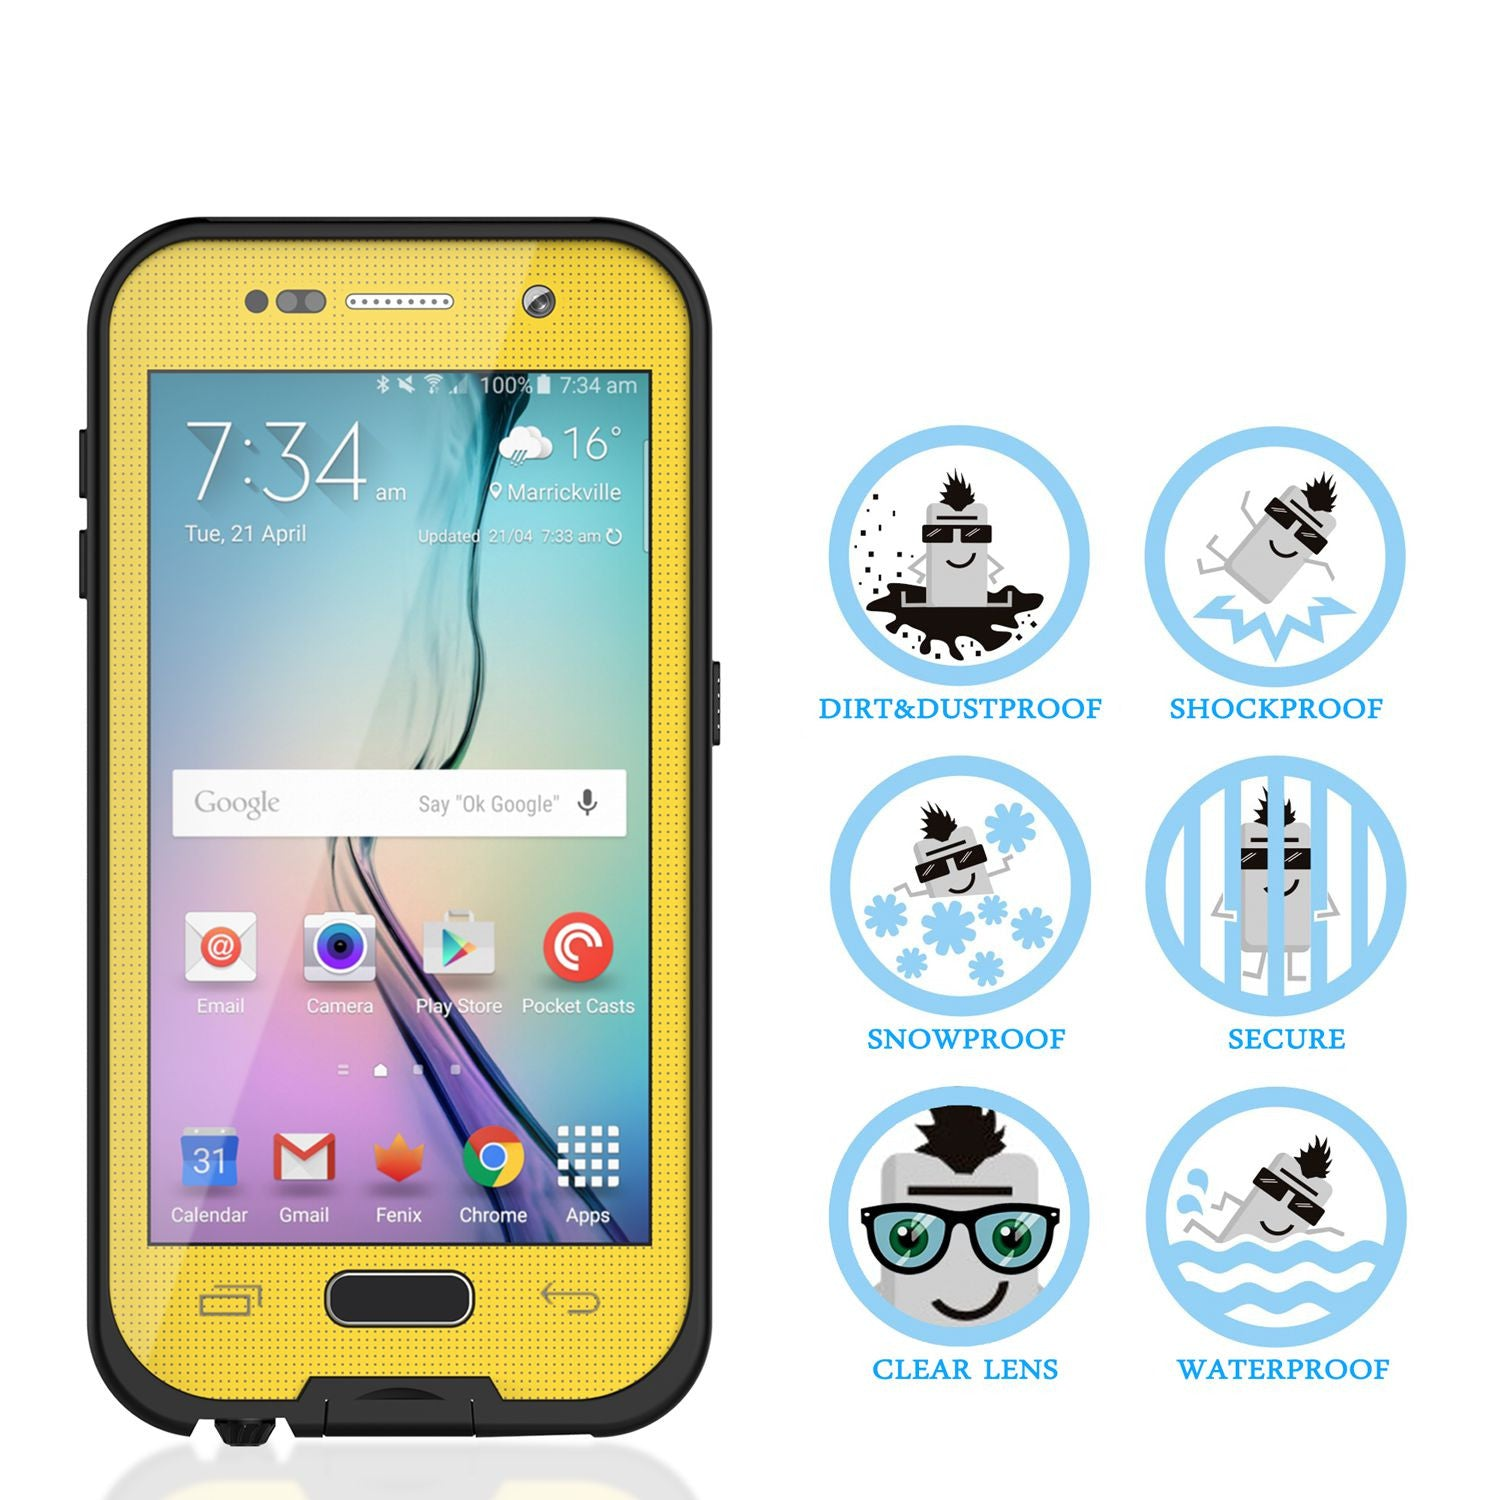 Galaxy S6 Waterproof Case Punkcase SpikeStar Yellow Water/Shock/Dirt/Snow Proof | Lifetime Warranty